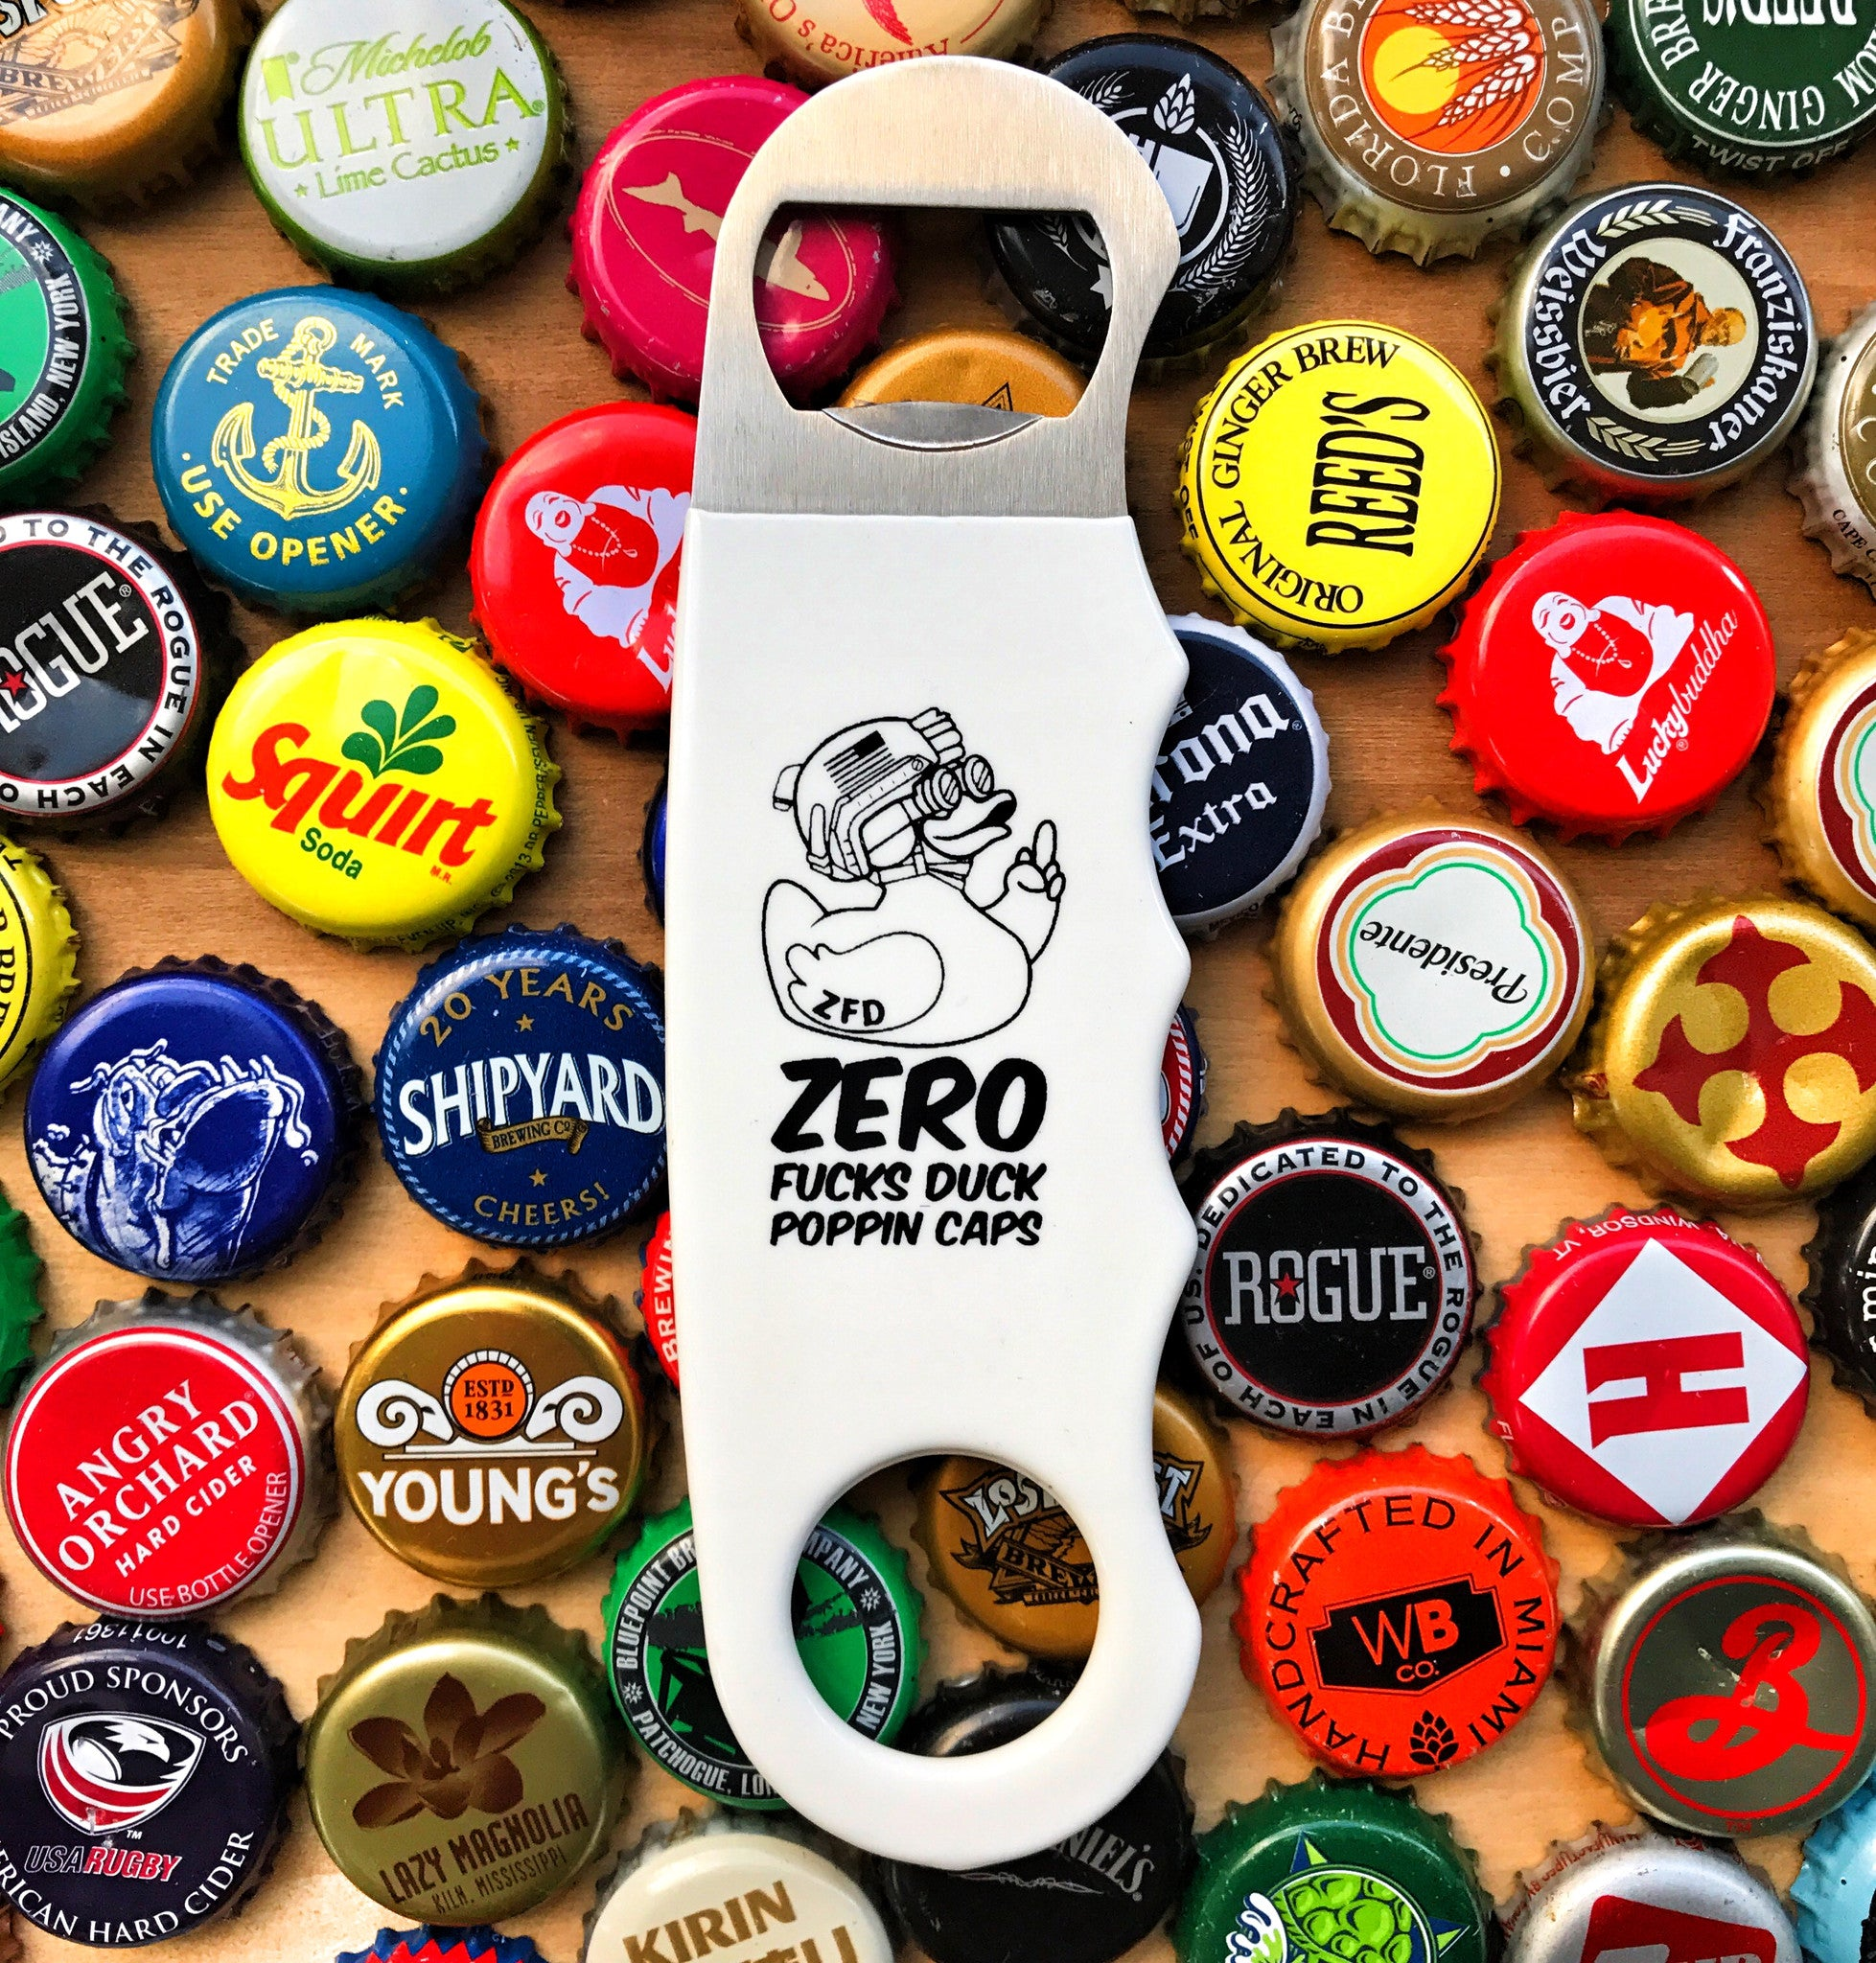 """ALL NEW"" A DUMP BOX ZERO FUCKS DUCK ZFD PISTOL GRIP BOTTLE OPENER - 2 COLOR OPTIONS"